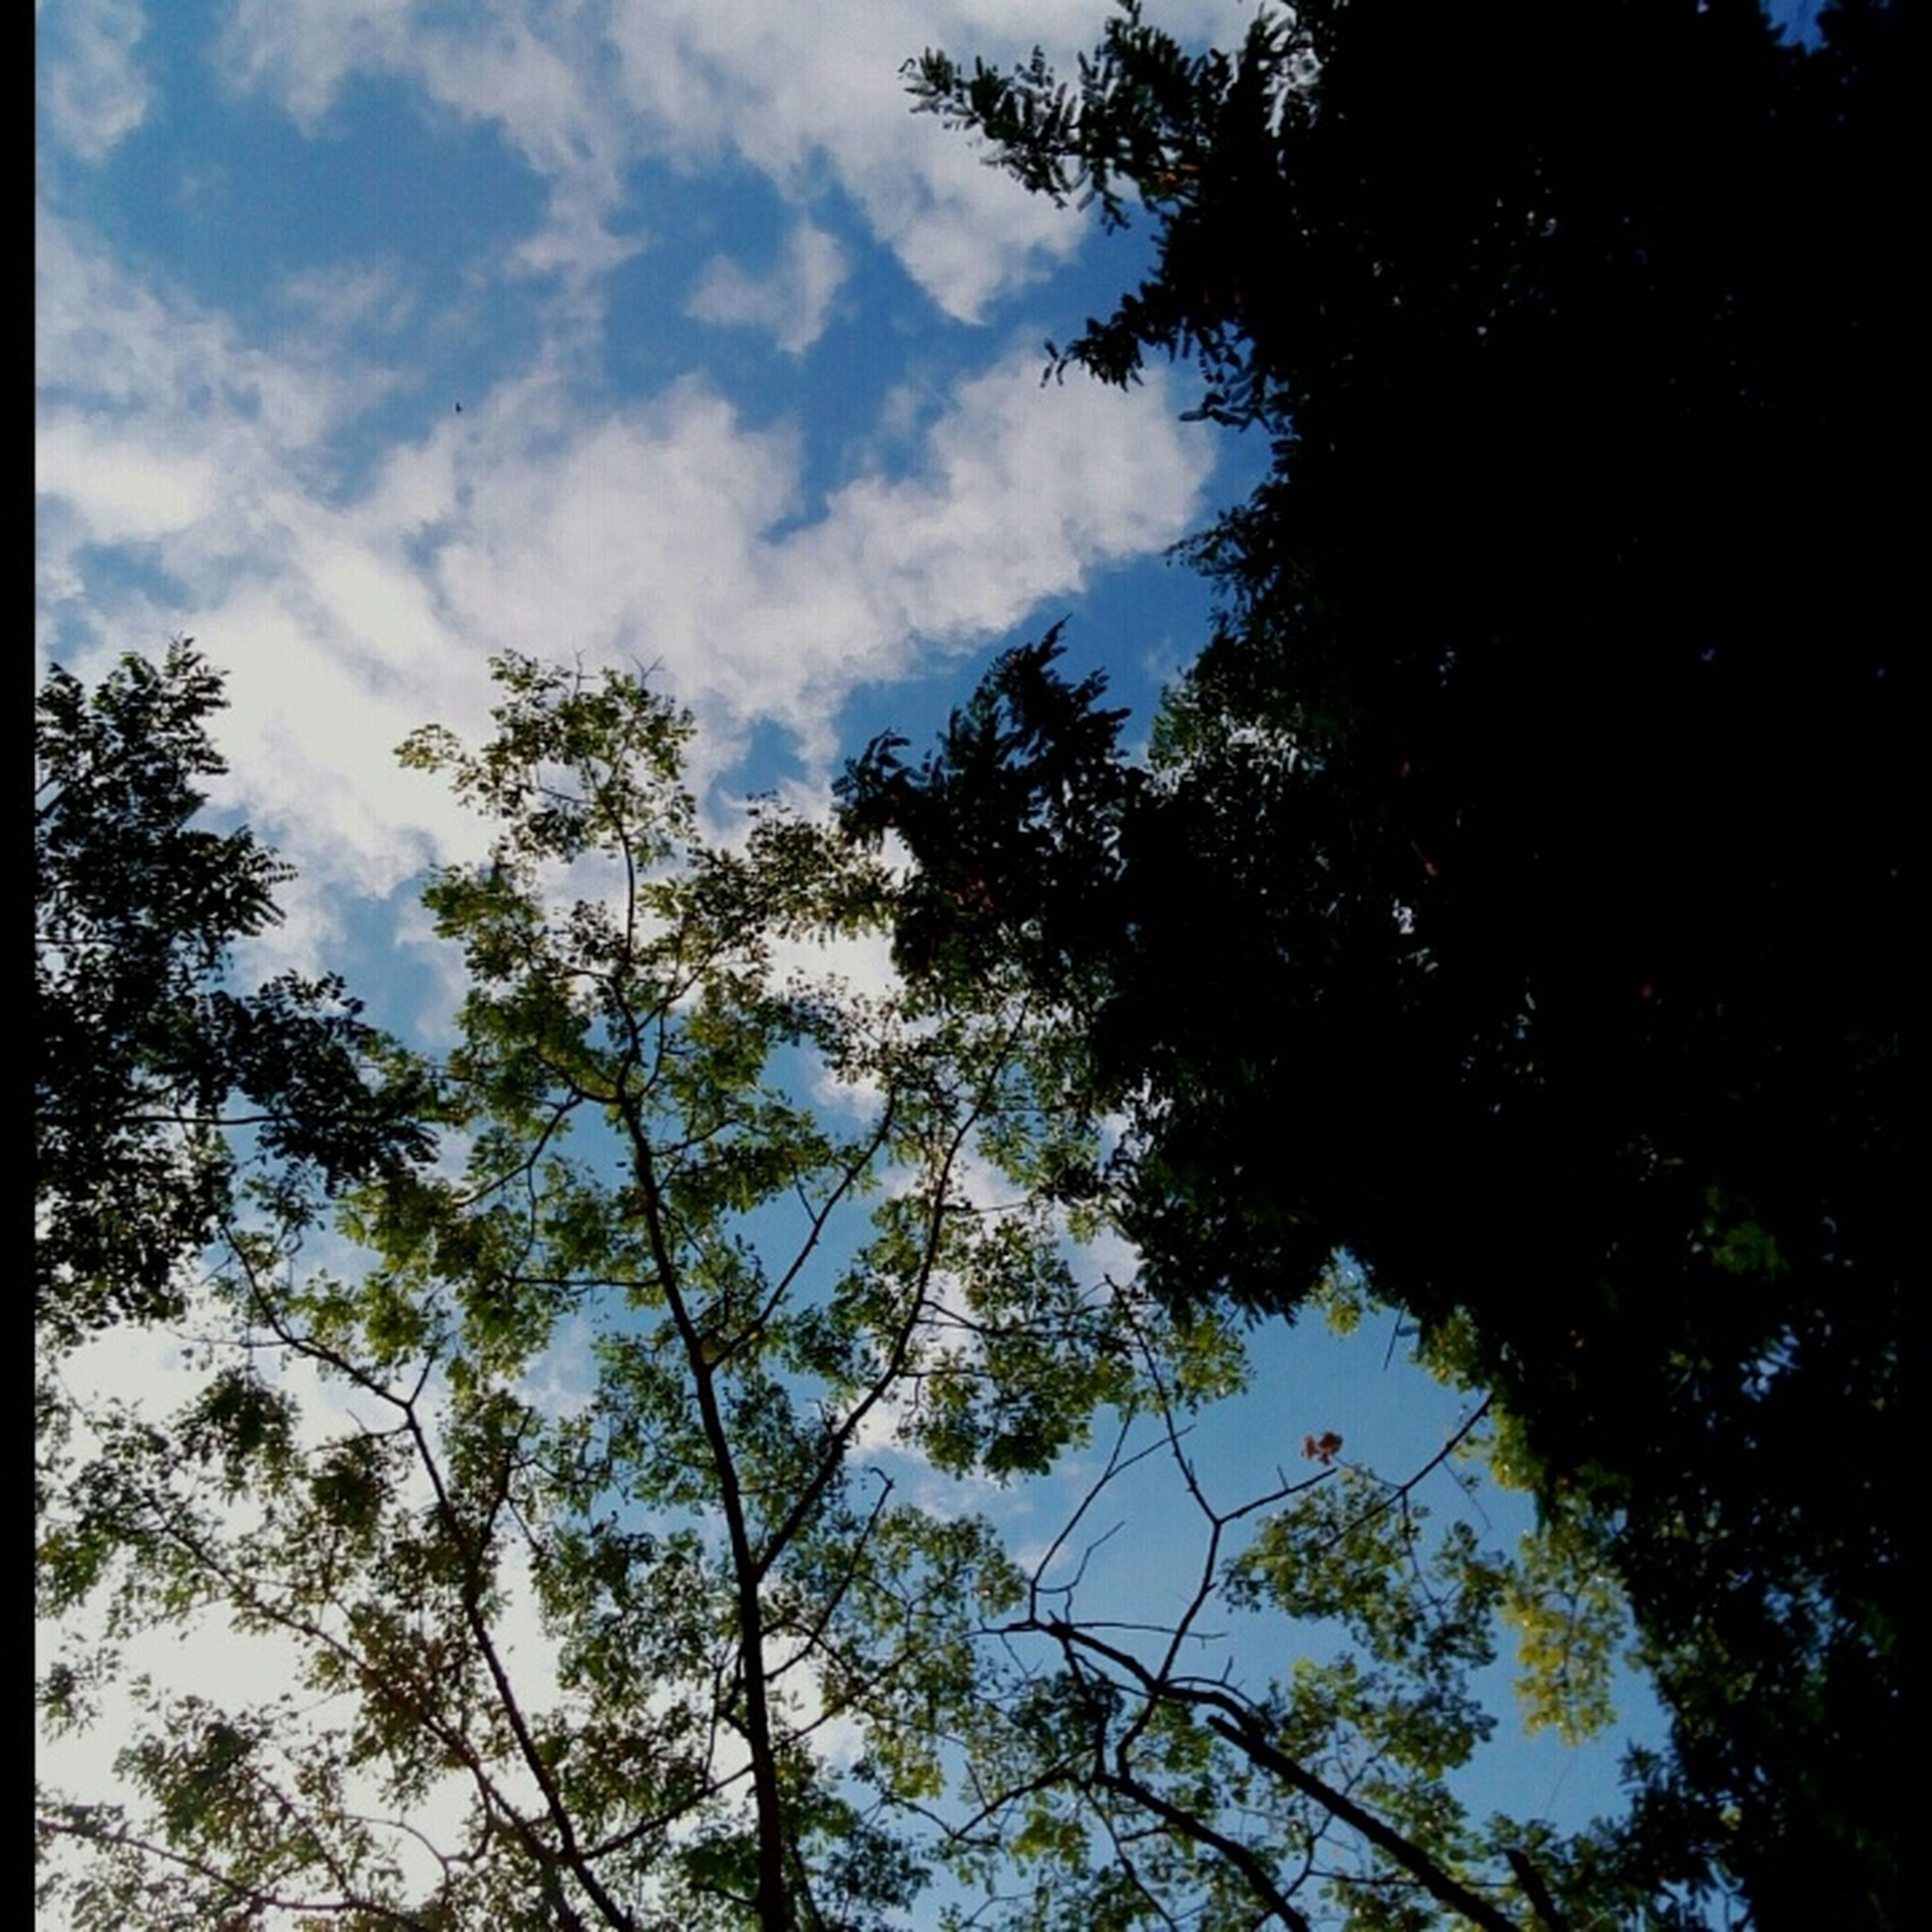 tree, low angle view, sky, branch, growth, tranquility, nature, silhouette, beauty in nature, cloud - sky, scenics, tranquil scene, cloud, outdoors, no people, day, cloudy, high section, tree trunk, treetop